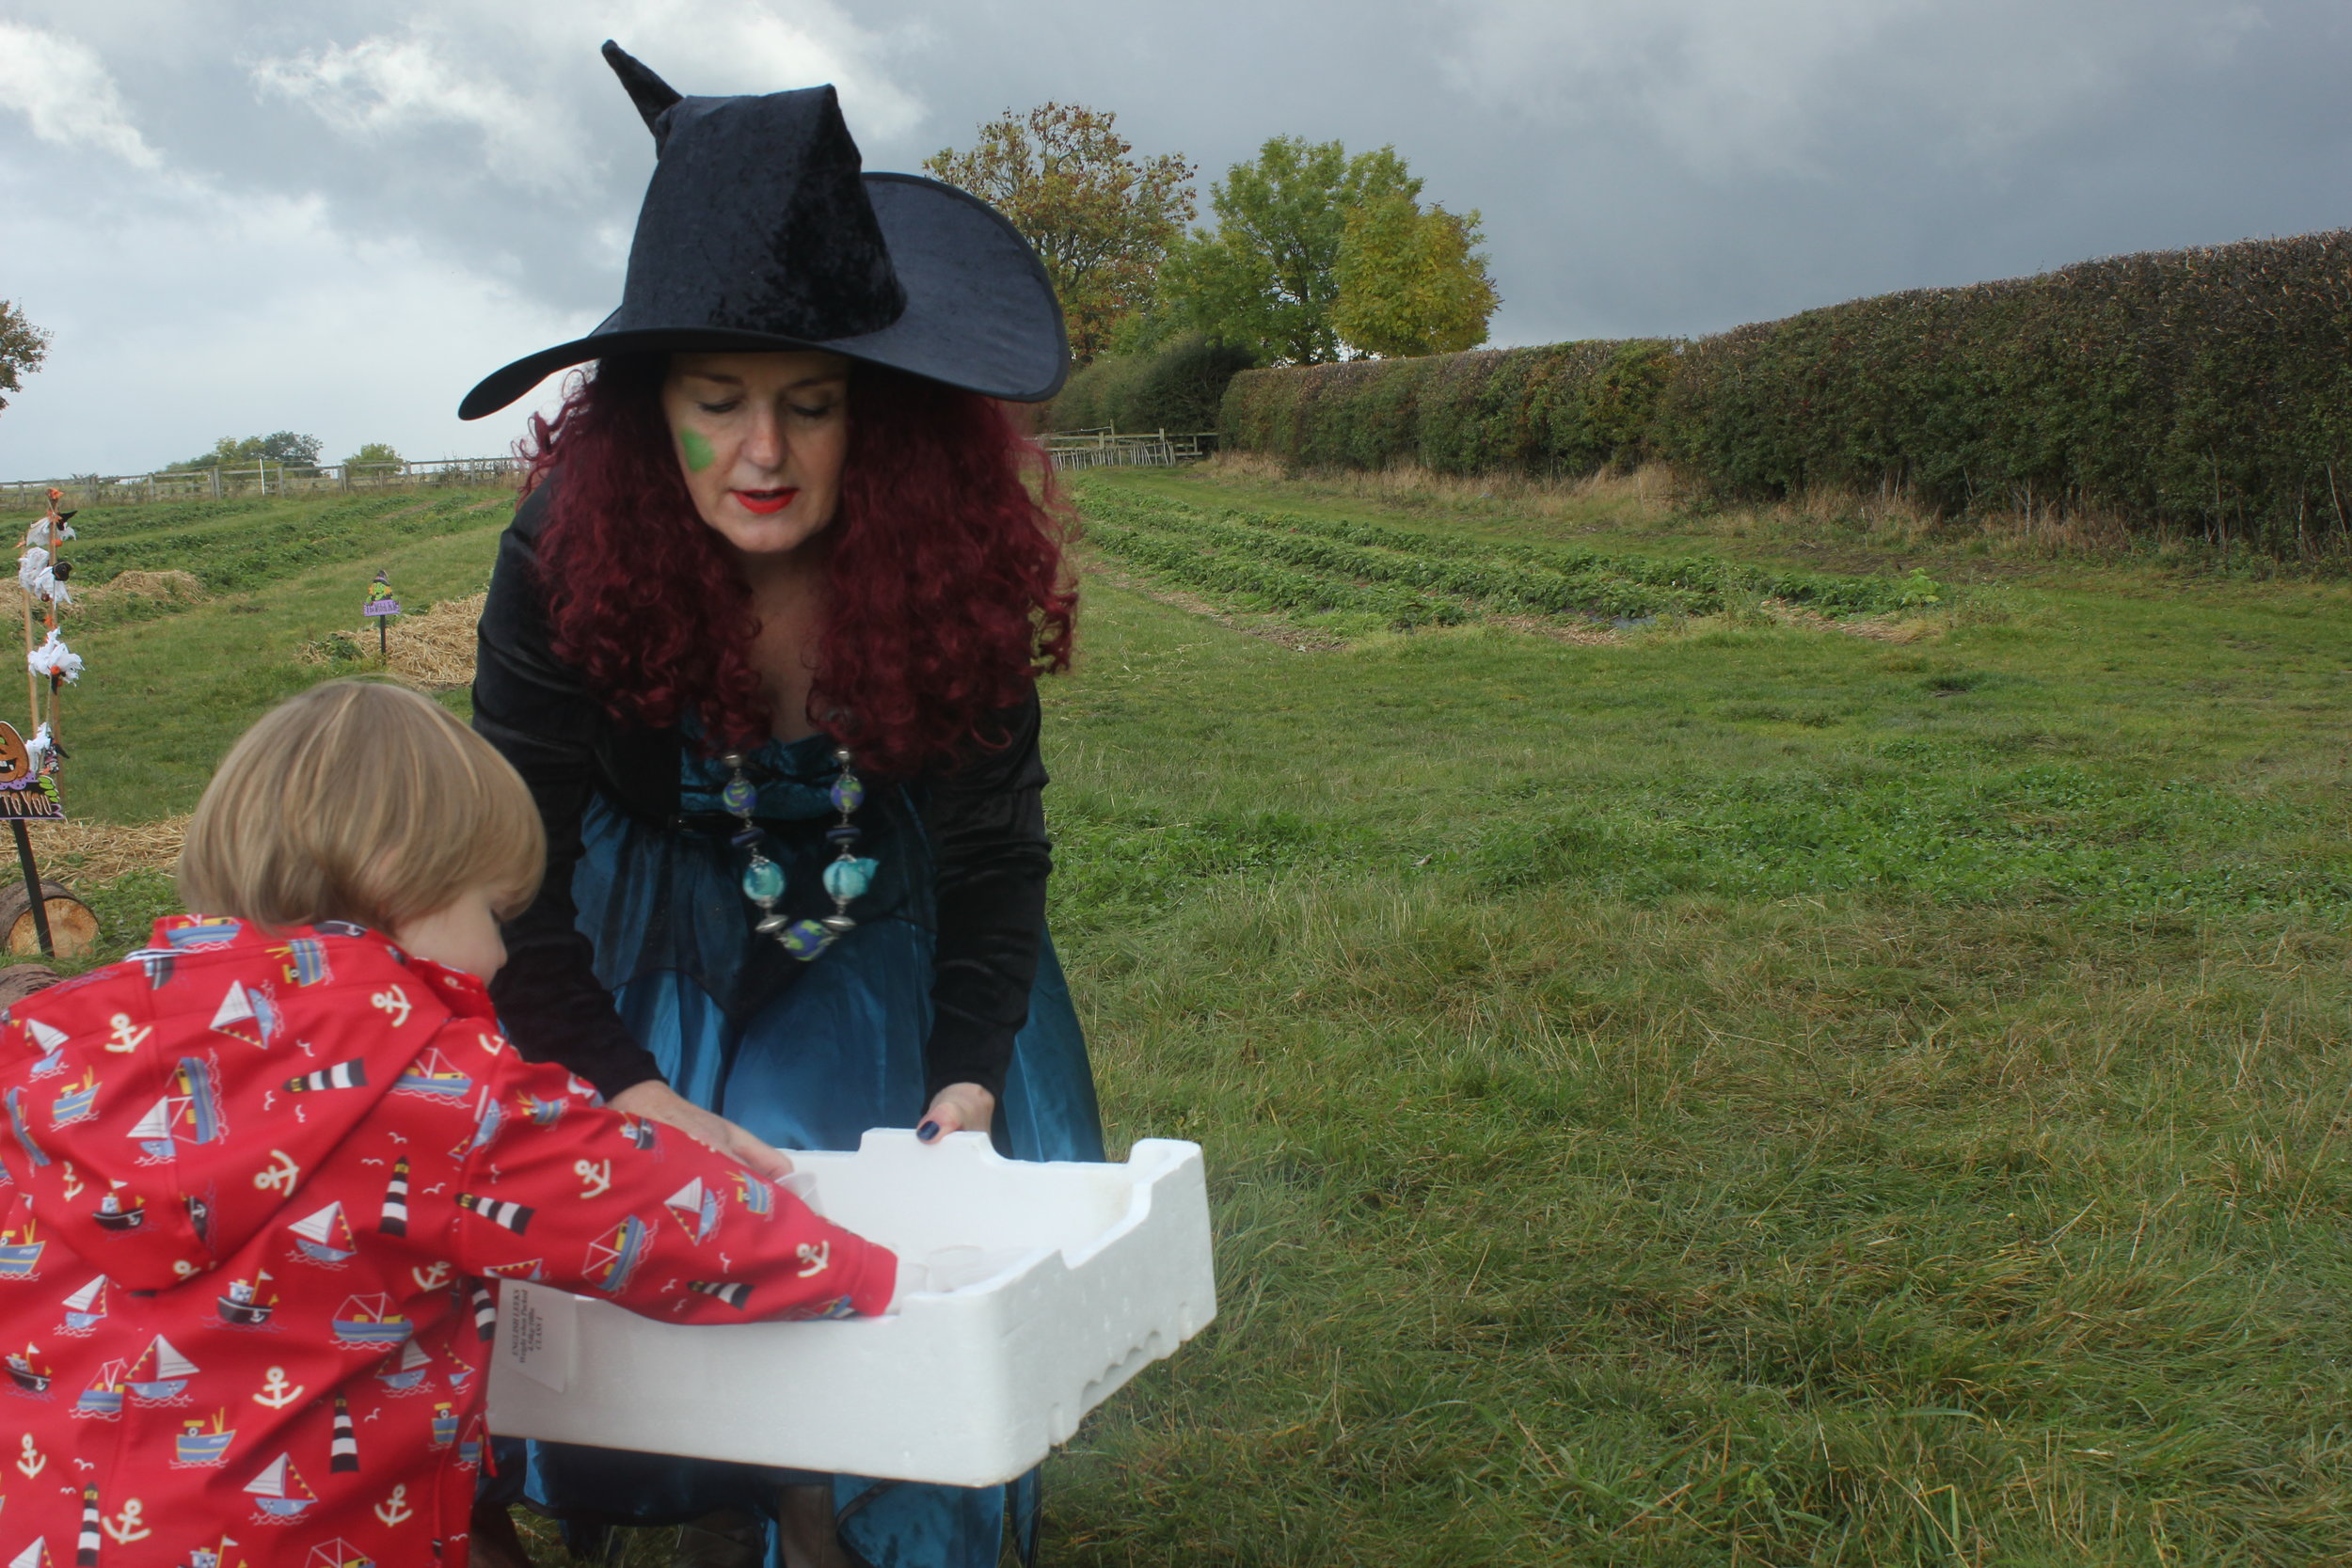 Brocksbushes farm shop and tea room Halloween 2016 Northumberland pumpkin patch kids events baby toddler. Eileen and Joe children's entertainer dressed as a witch, with a toddler.